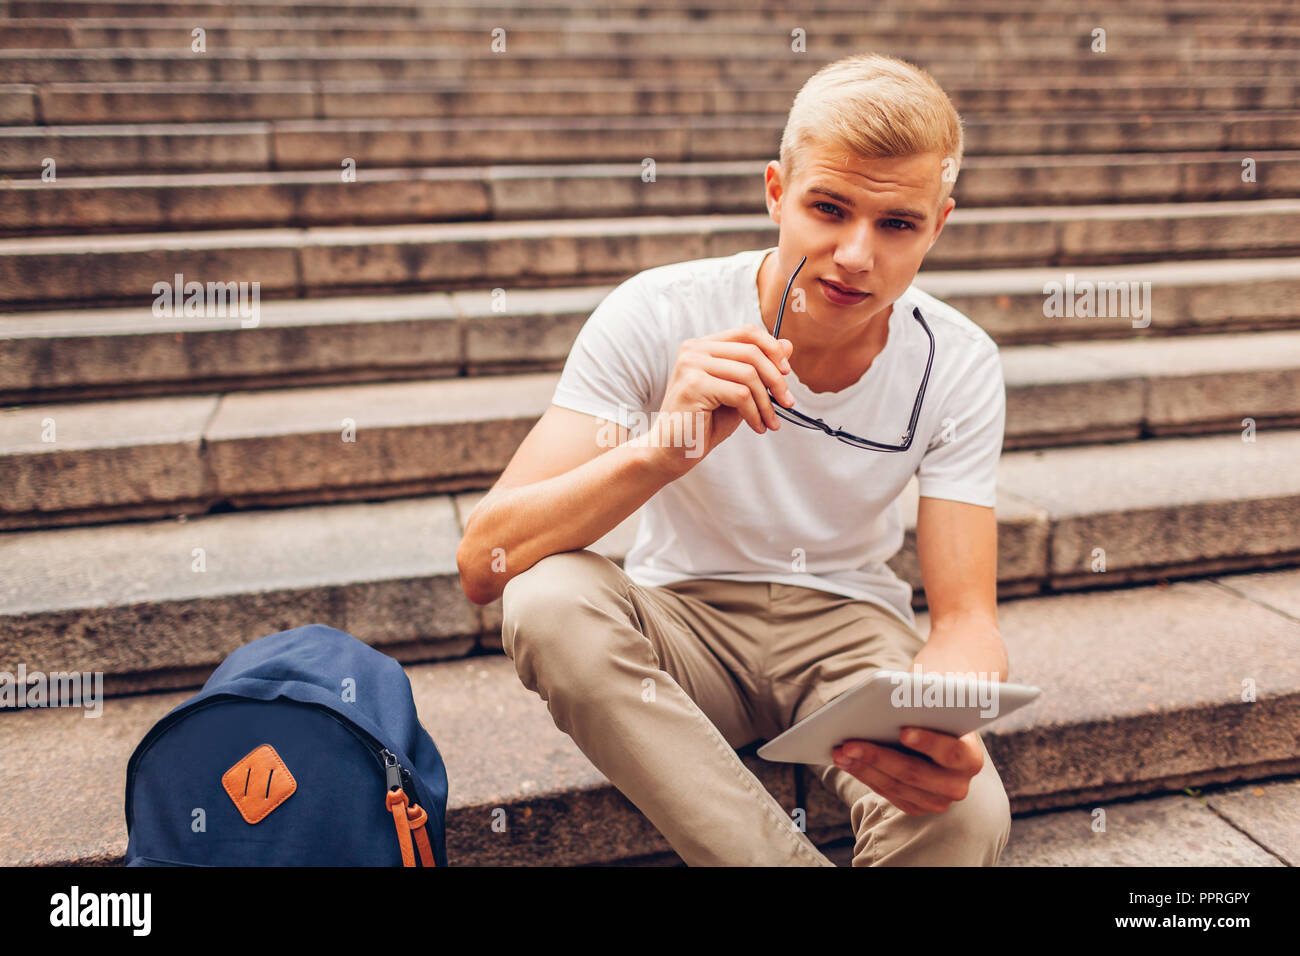 College student with backpack using tablet sitting on stairs and holding glasses. Guy studying outdoors. Education concept - Stock Image